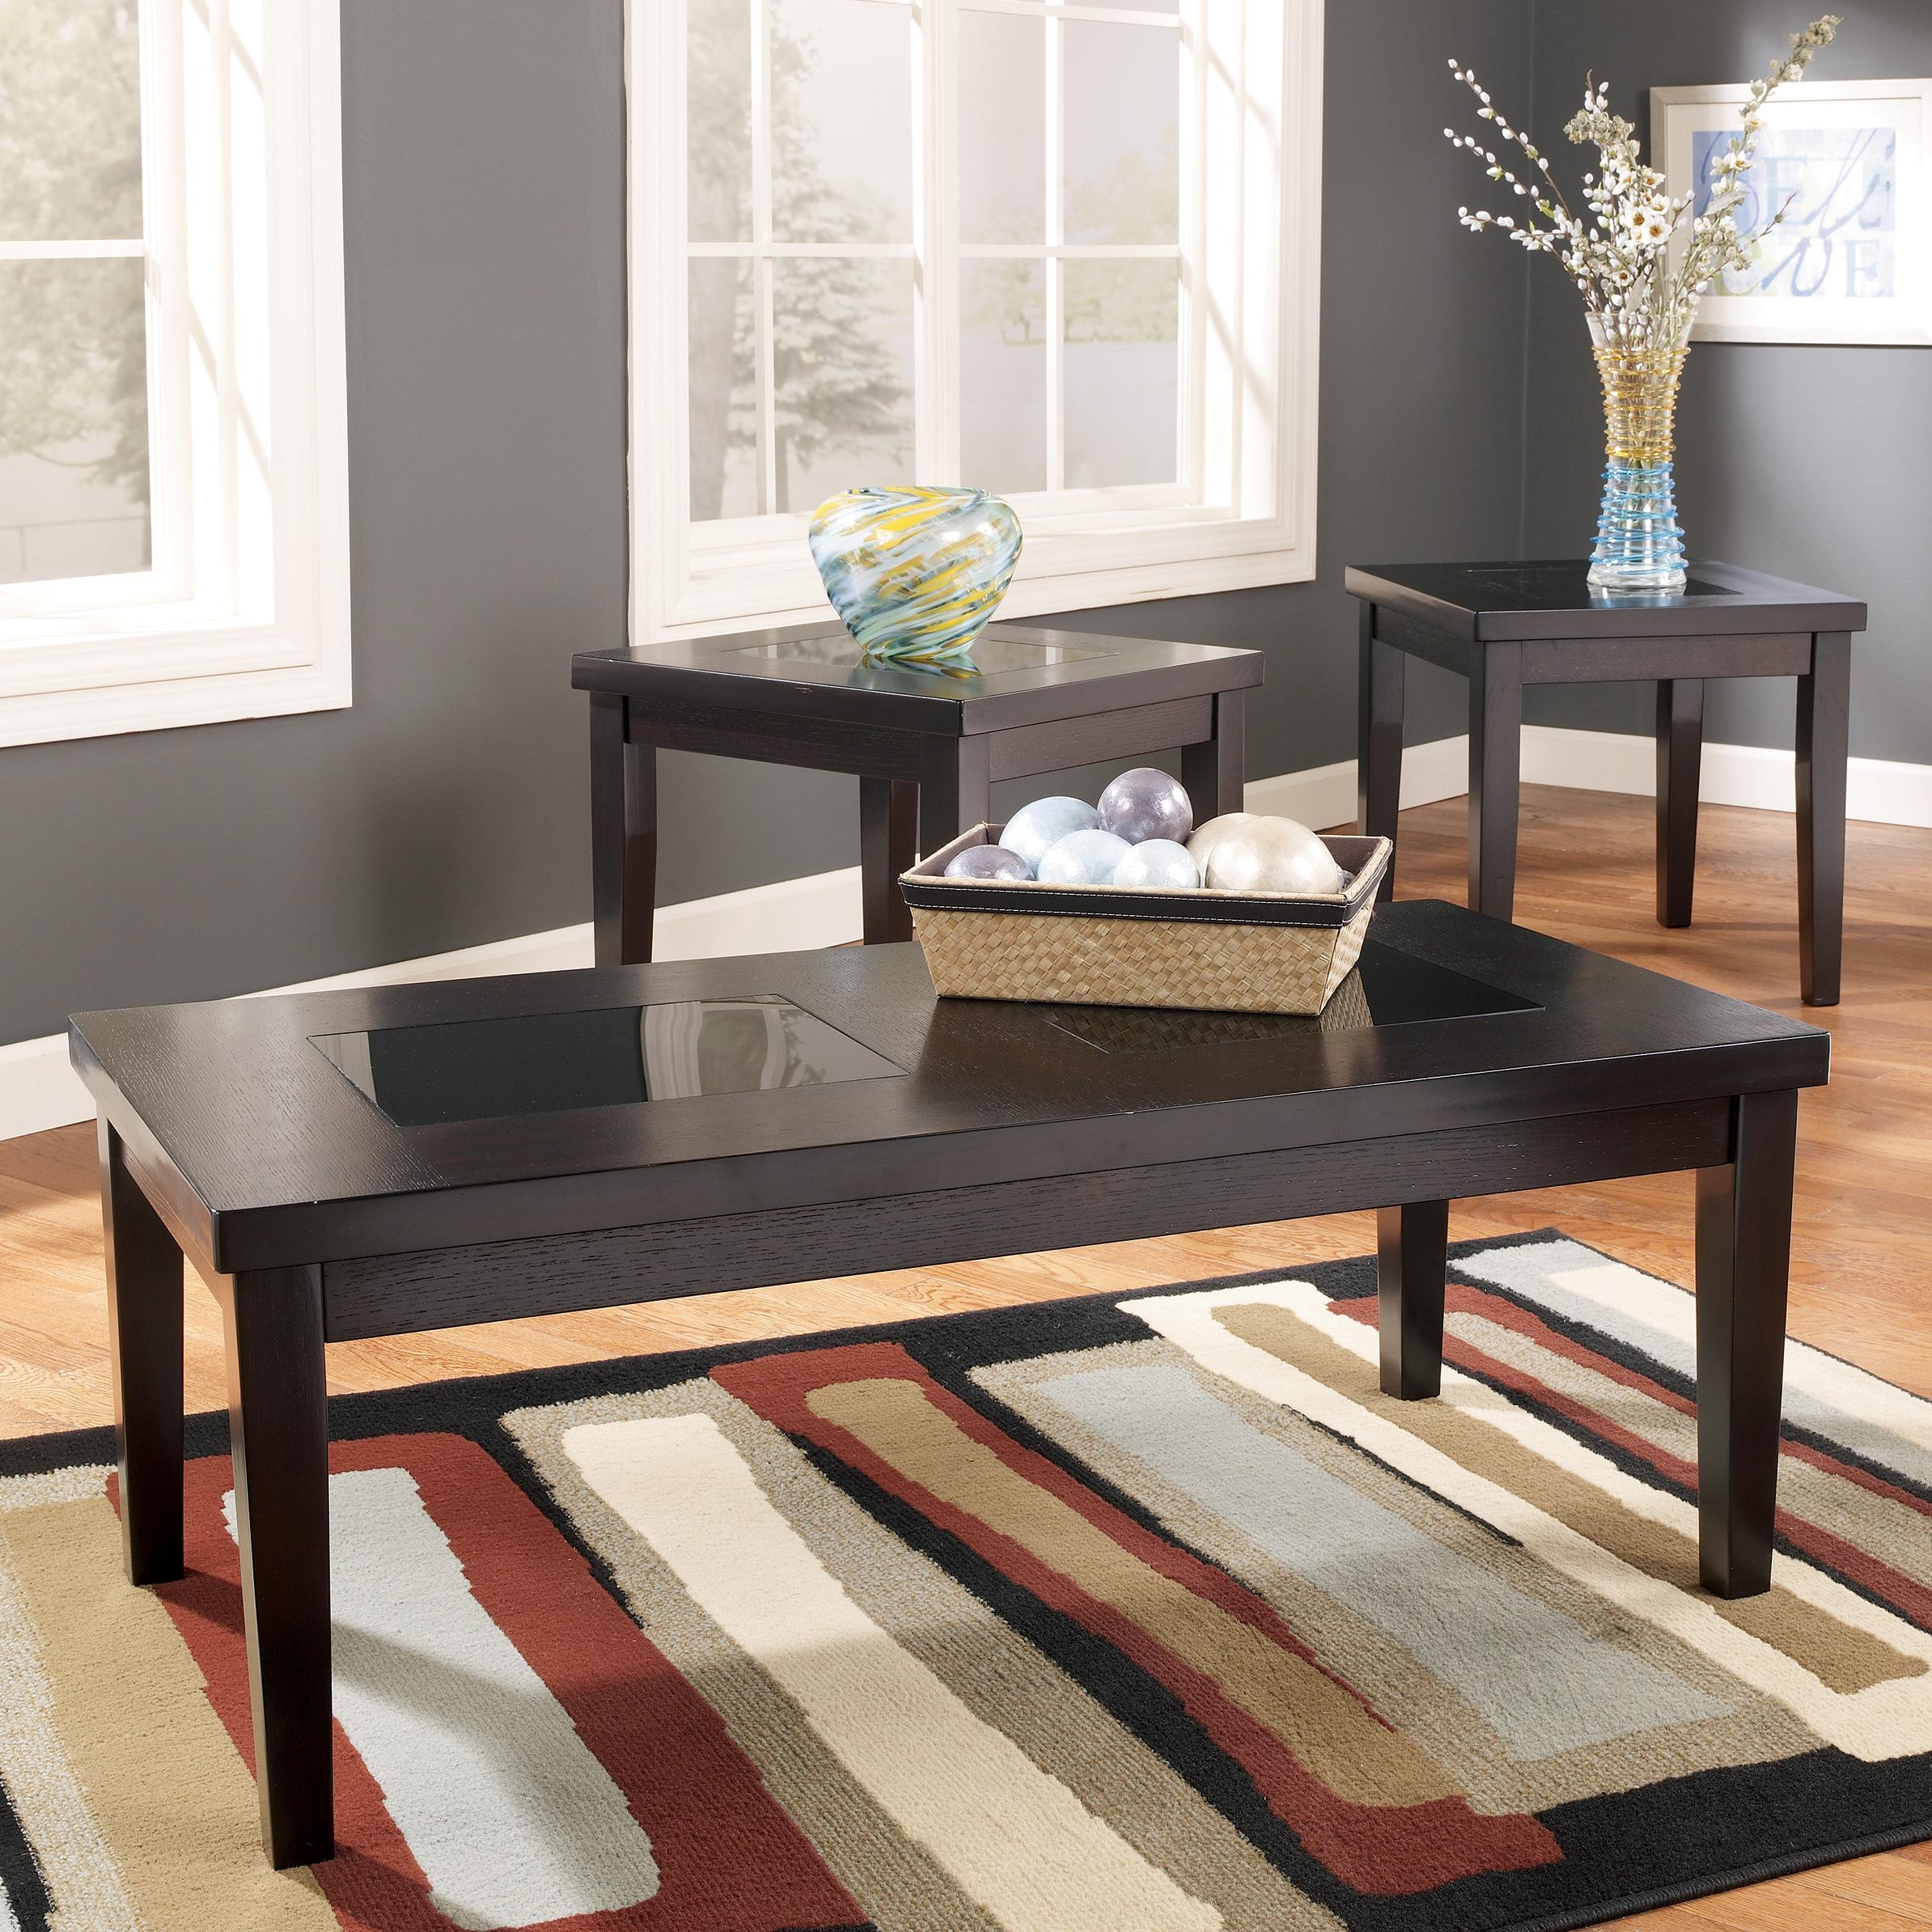 Ashley Mallacar Piece Coffee Table Set In Black T: Signature Design By Ashley Denja 3-in-1 Pack Occasional